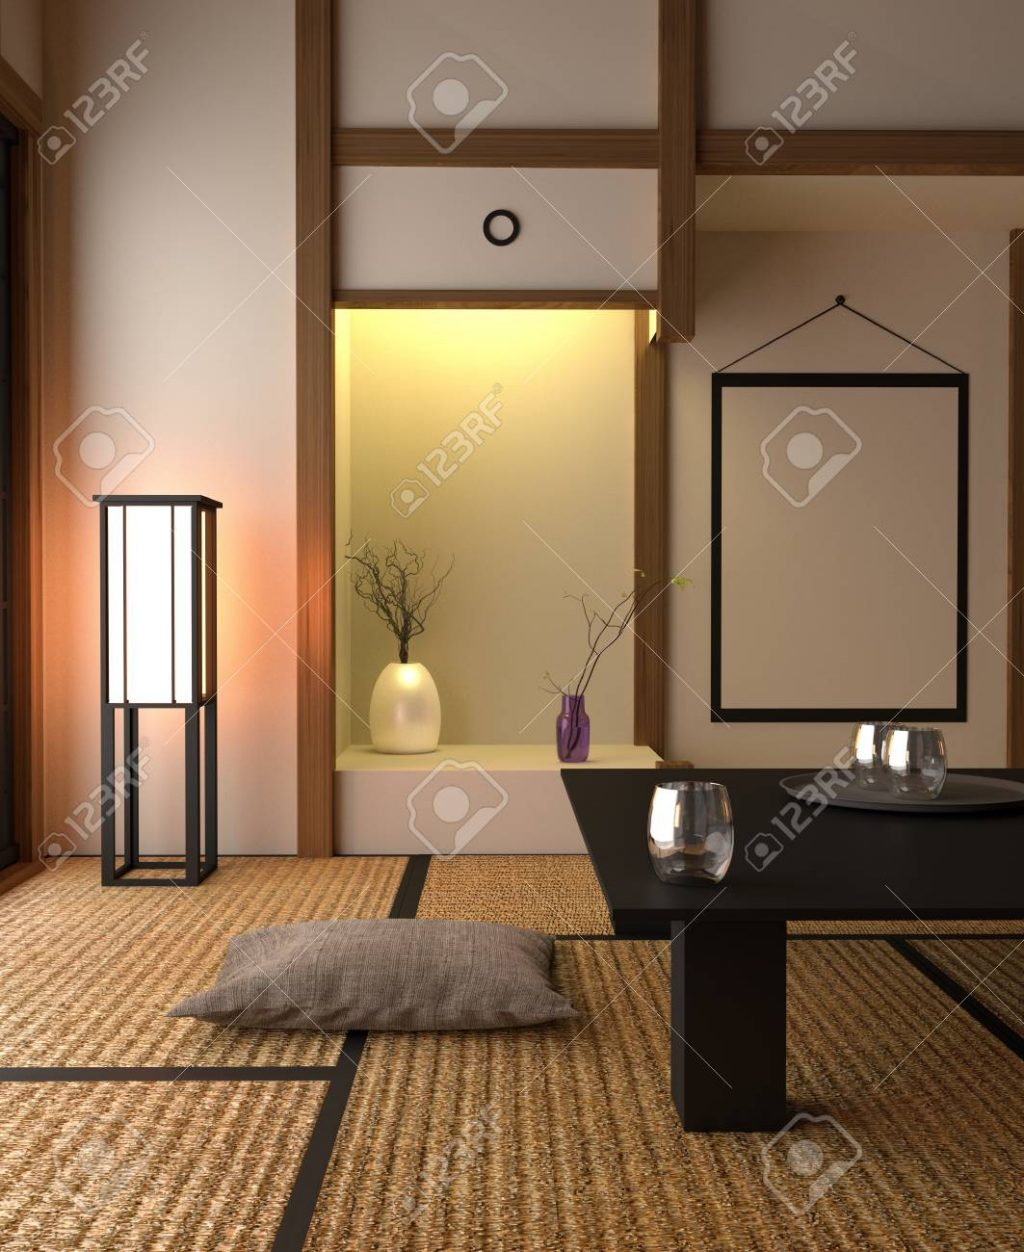 Japanese Style Interior Design Living Room 3d Rendering Stock